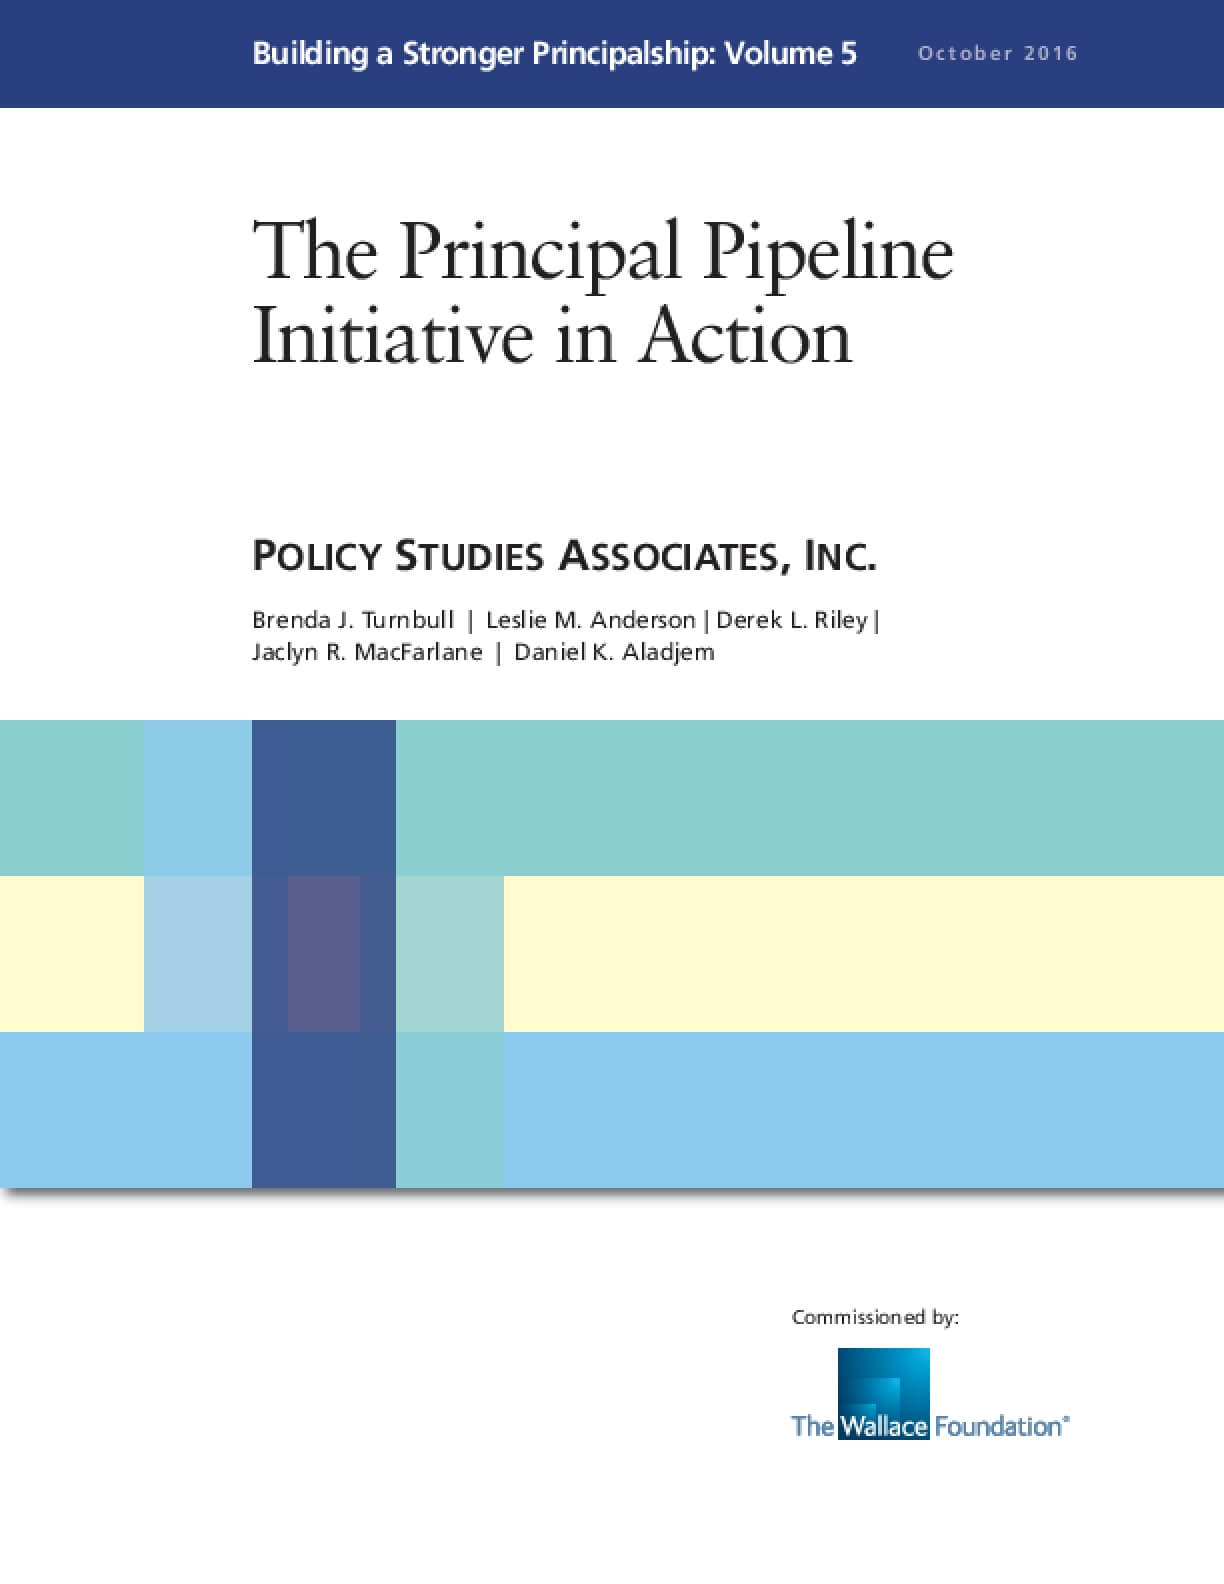 The Principal Pipeline Initiative in Action